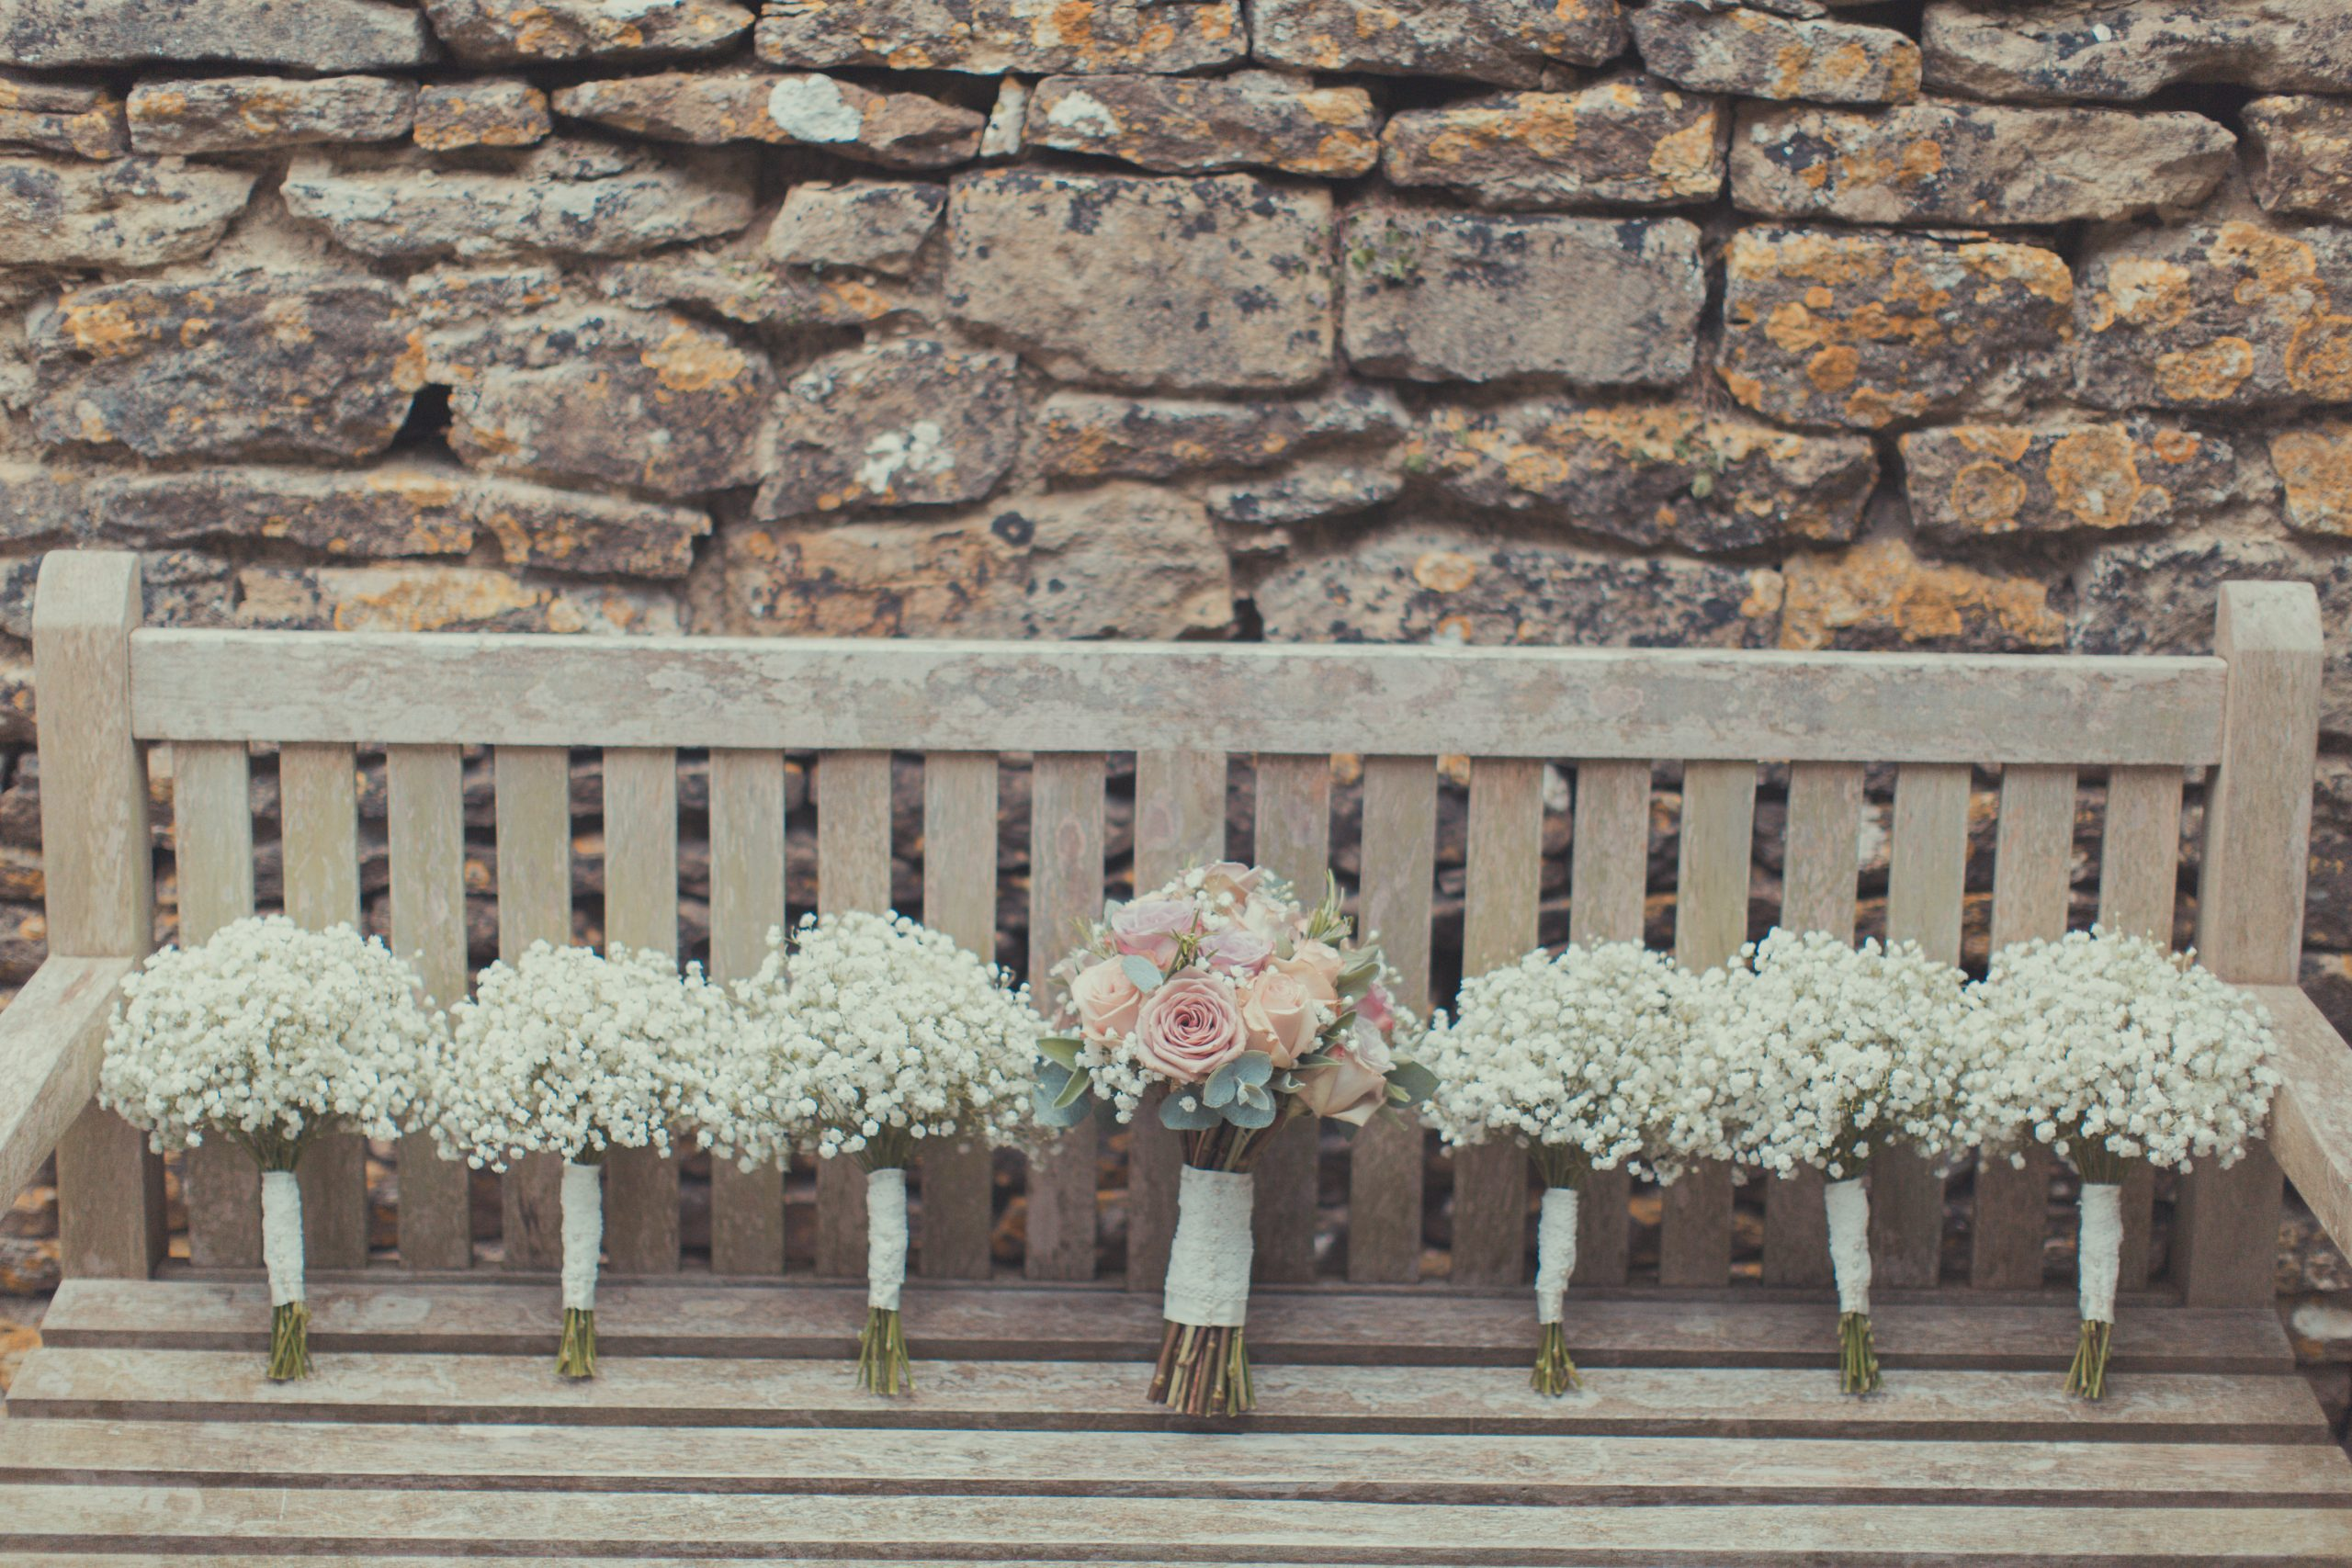 Vintage bride and bridesmaids bouquet on a bench